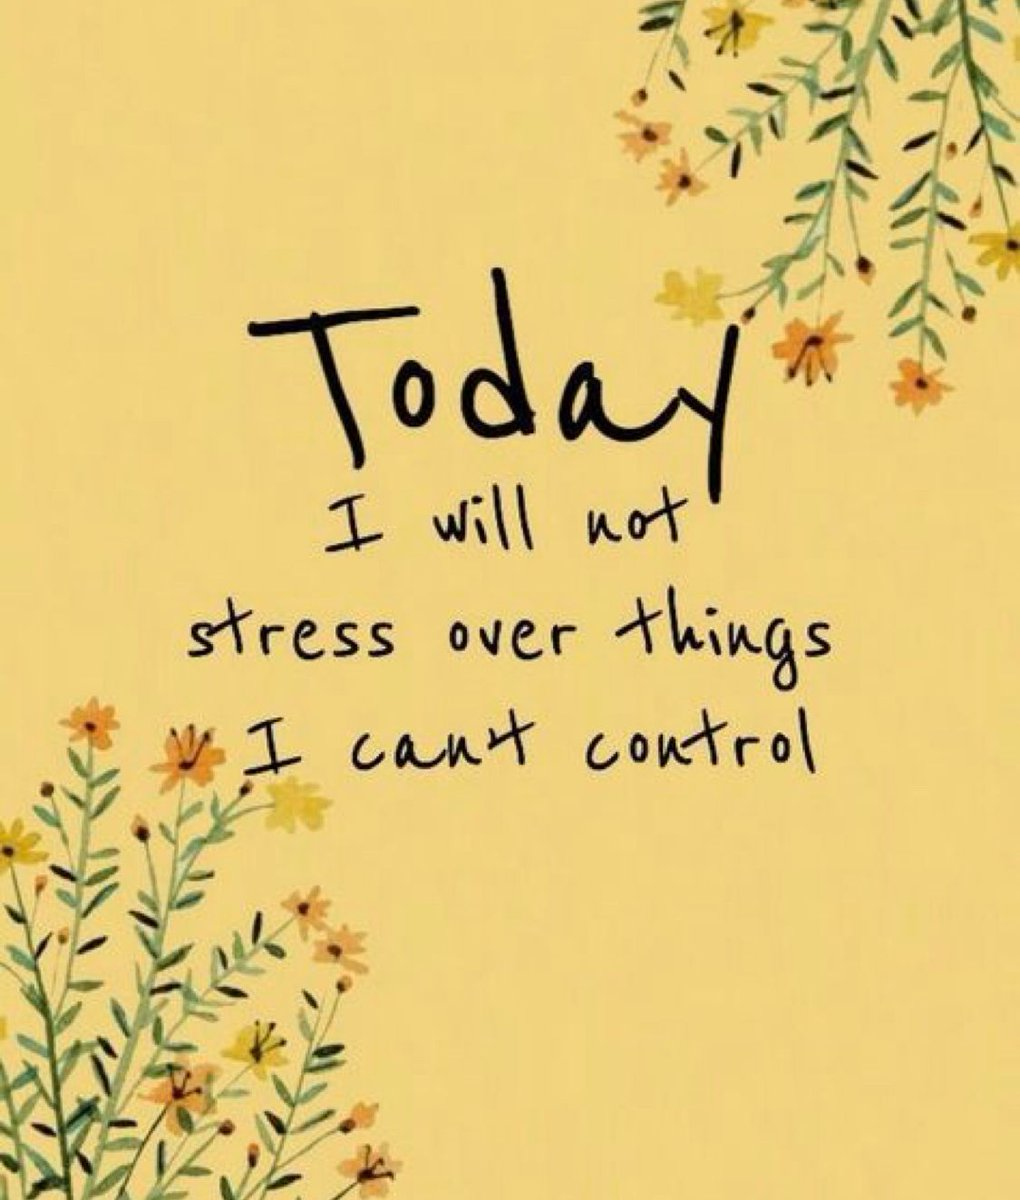 Today...  #mentalhealth #love #friends #kindness #faith #support #newyear #bipolar #thoughts #world